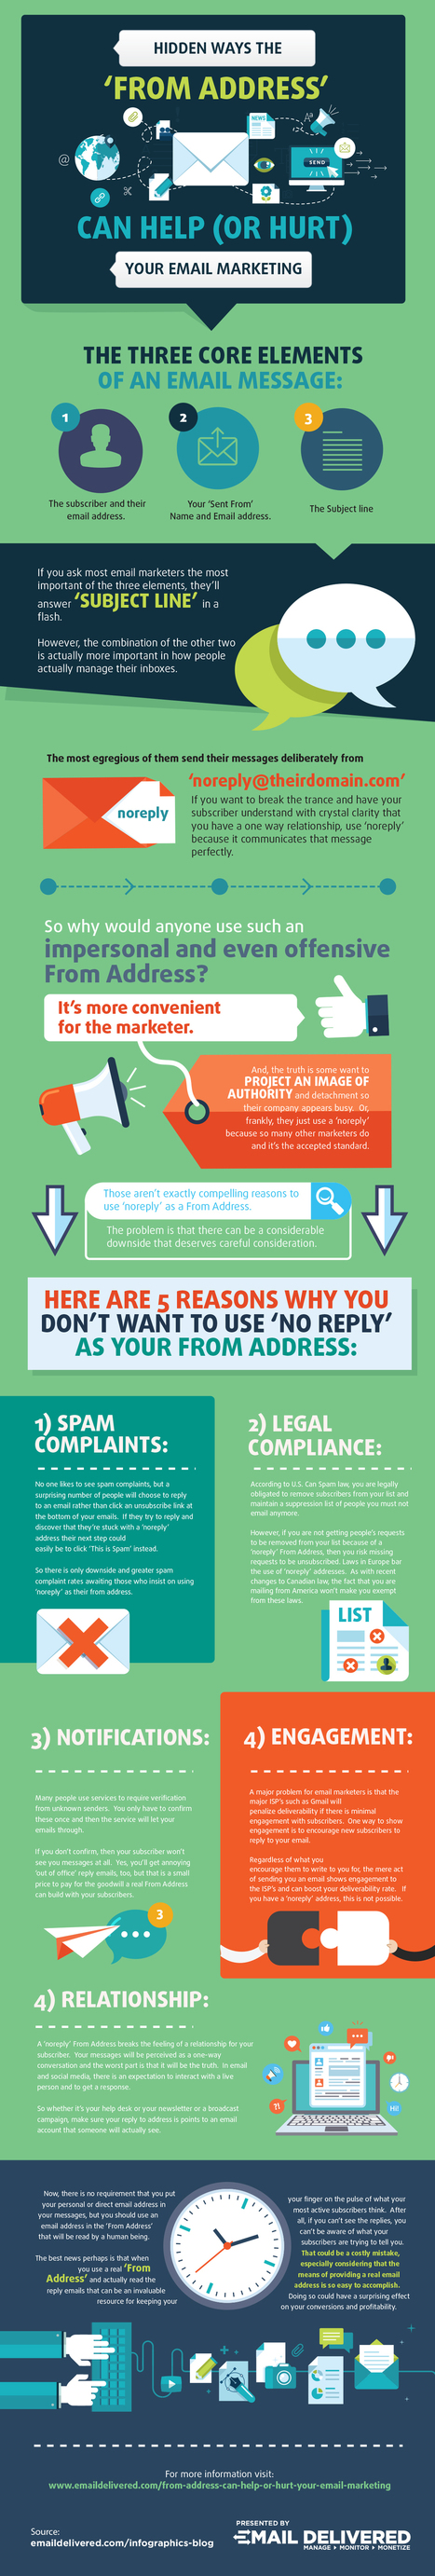 Hidden Ways the From Address Can Help or Hurt Your Email Marketing-Infographic | Email Delivered | Scoop.it